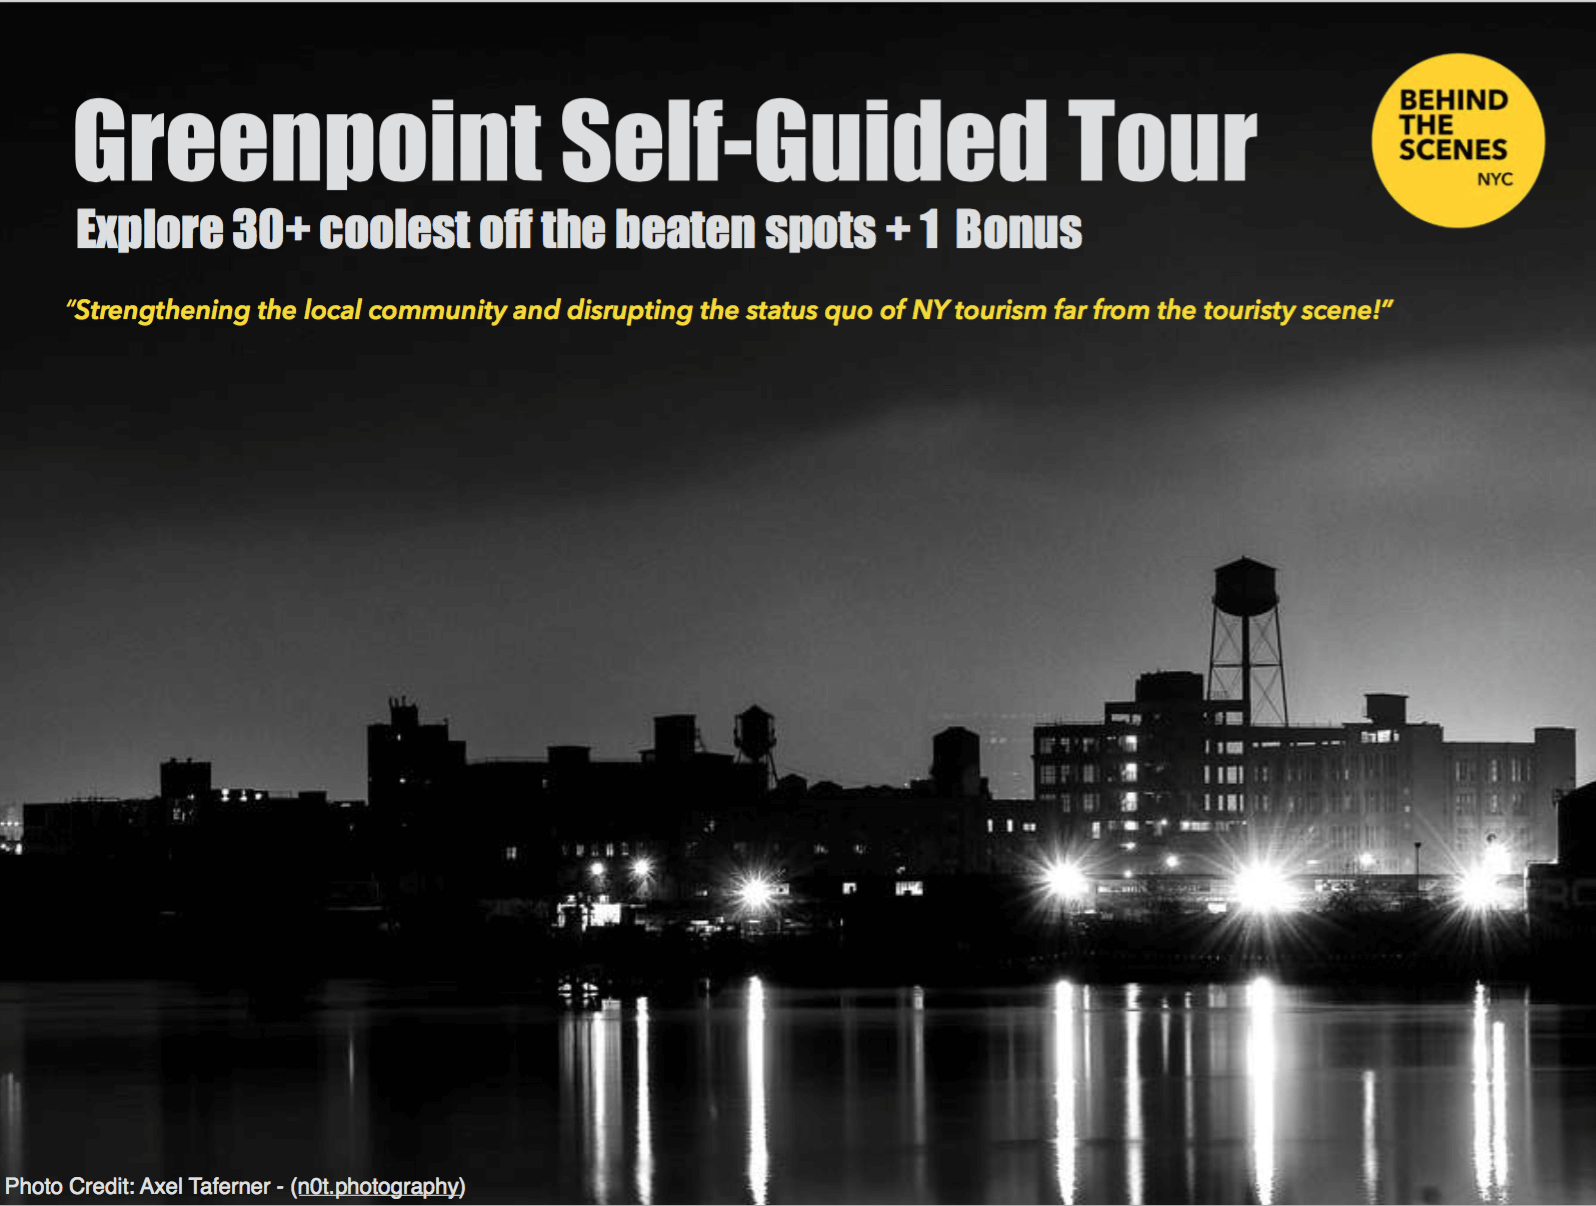 Shop NYC Gifts Greenpoint Self Guided Tour